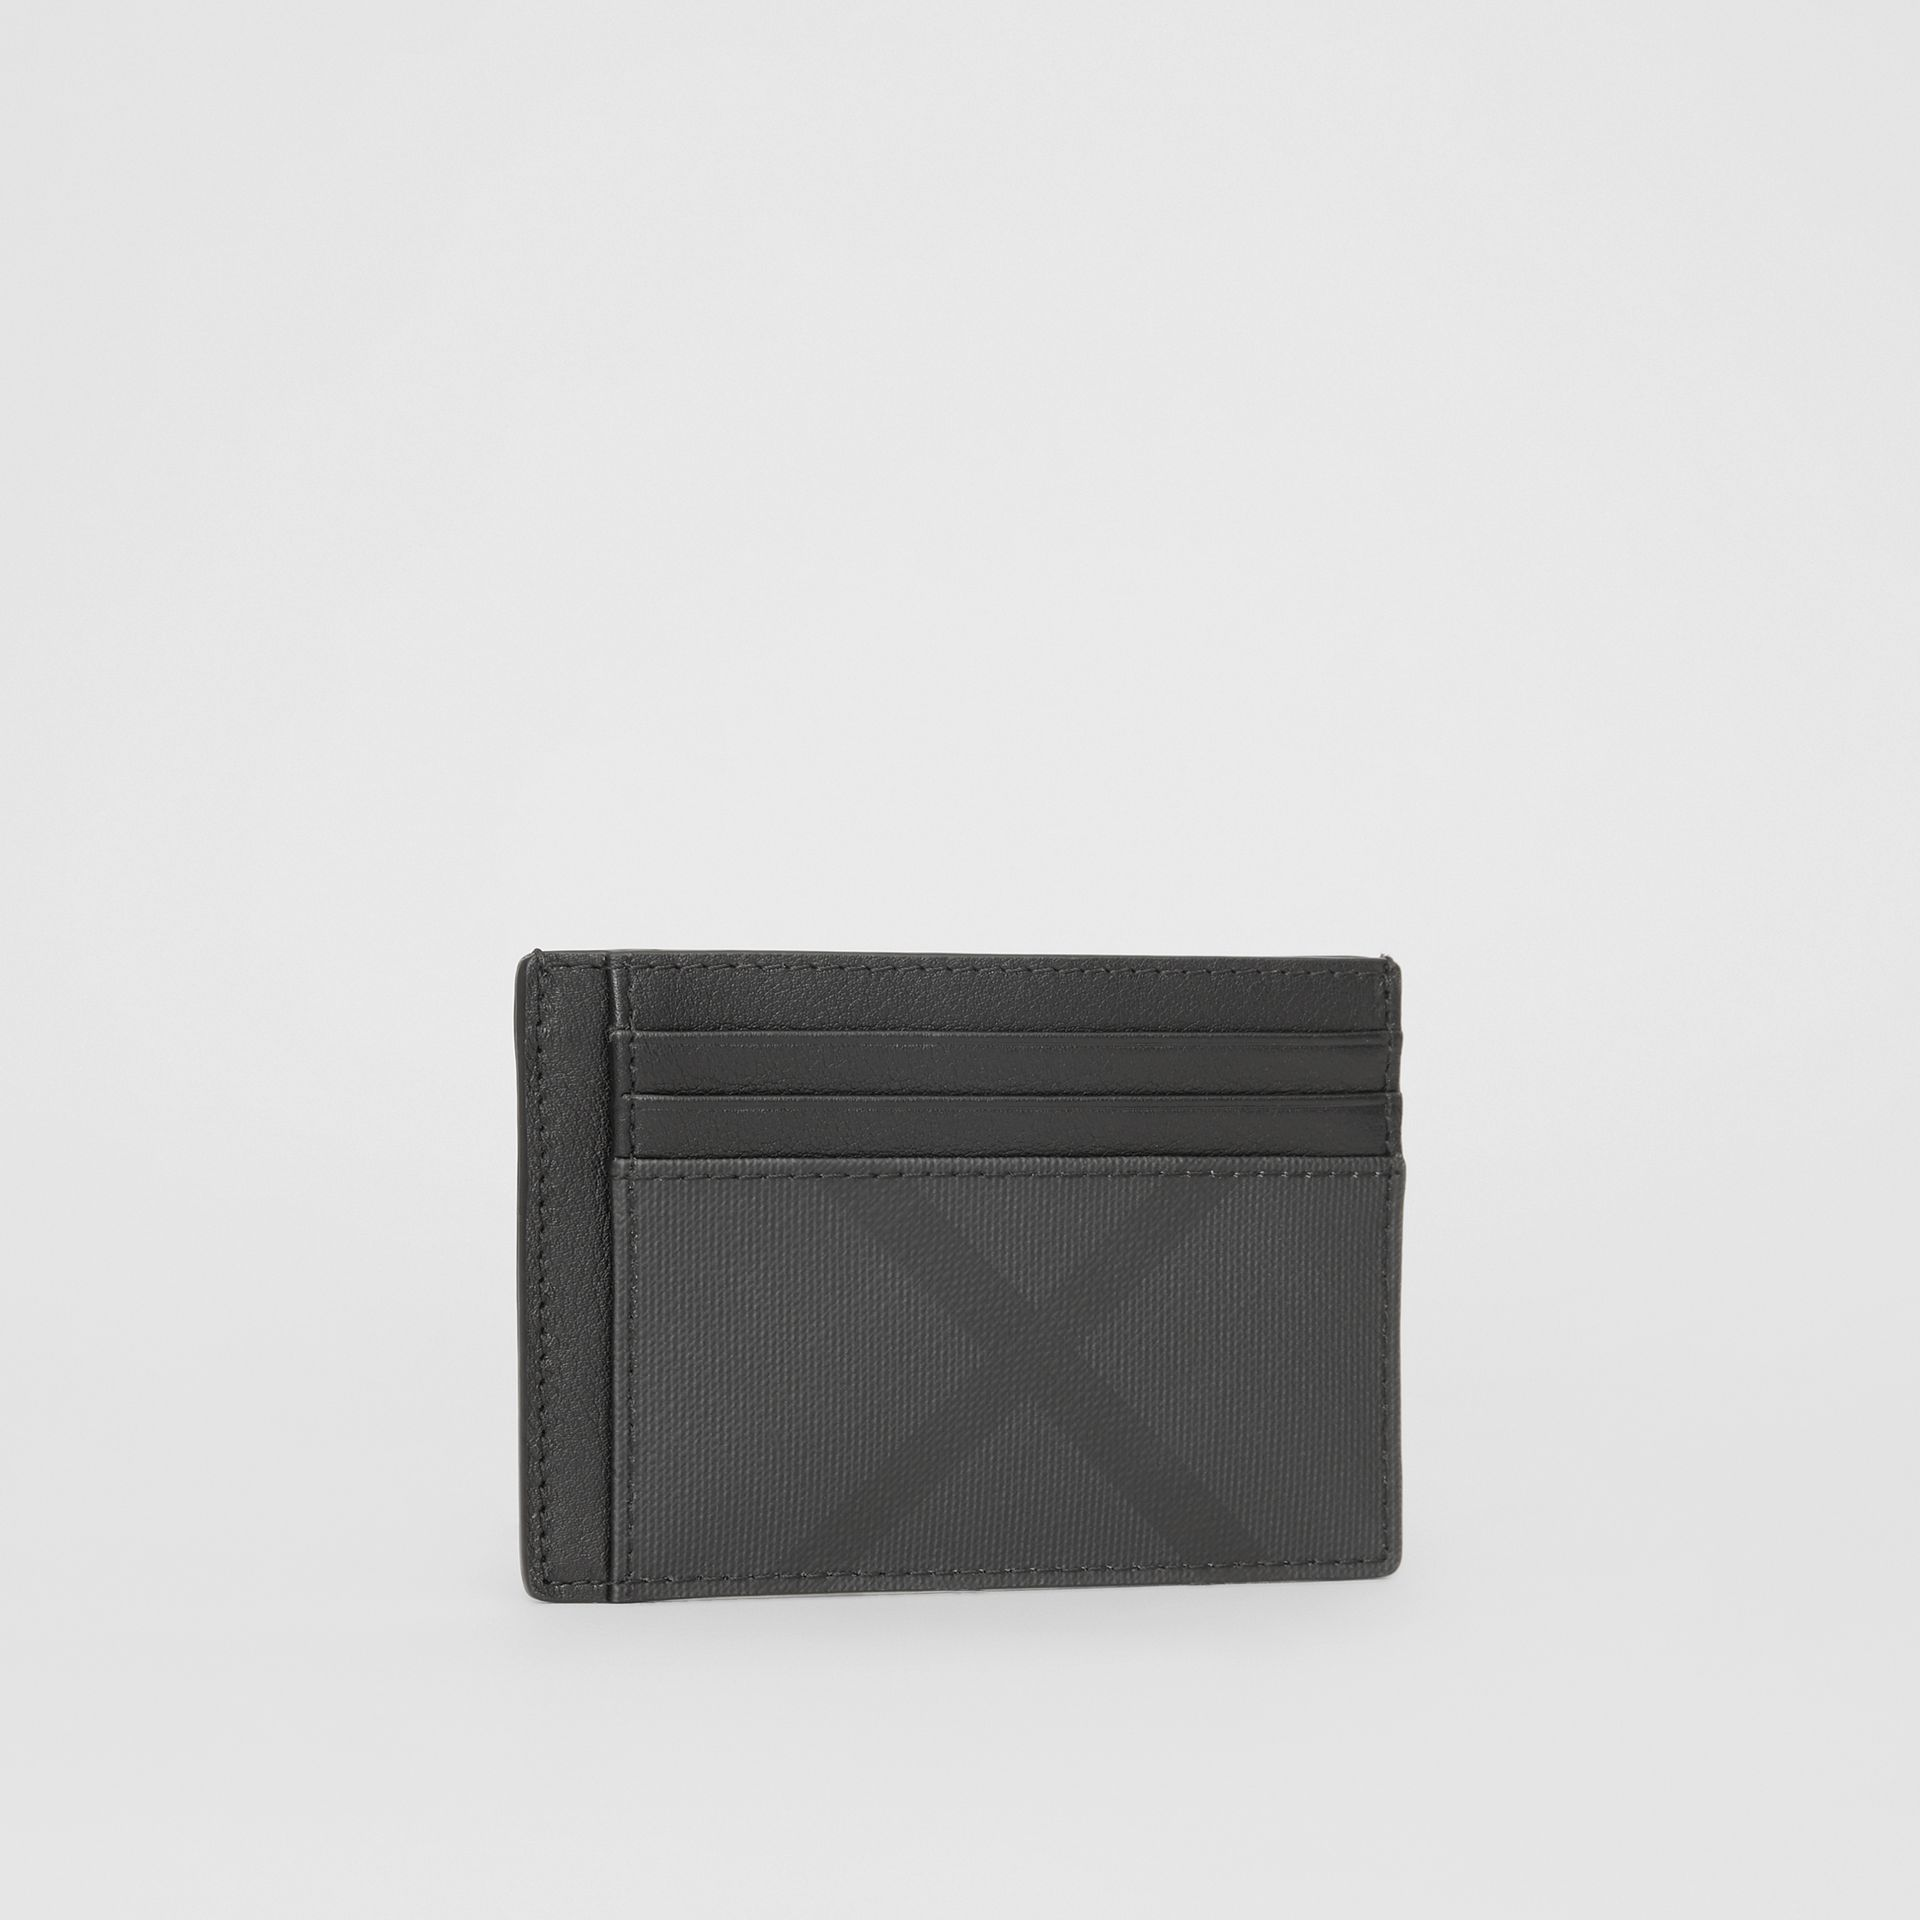 London Check and Leather Card Case in Dark Charcoal - Men | Burberry United Kingdom - gallery image 3